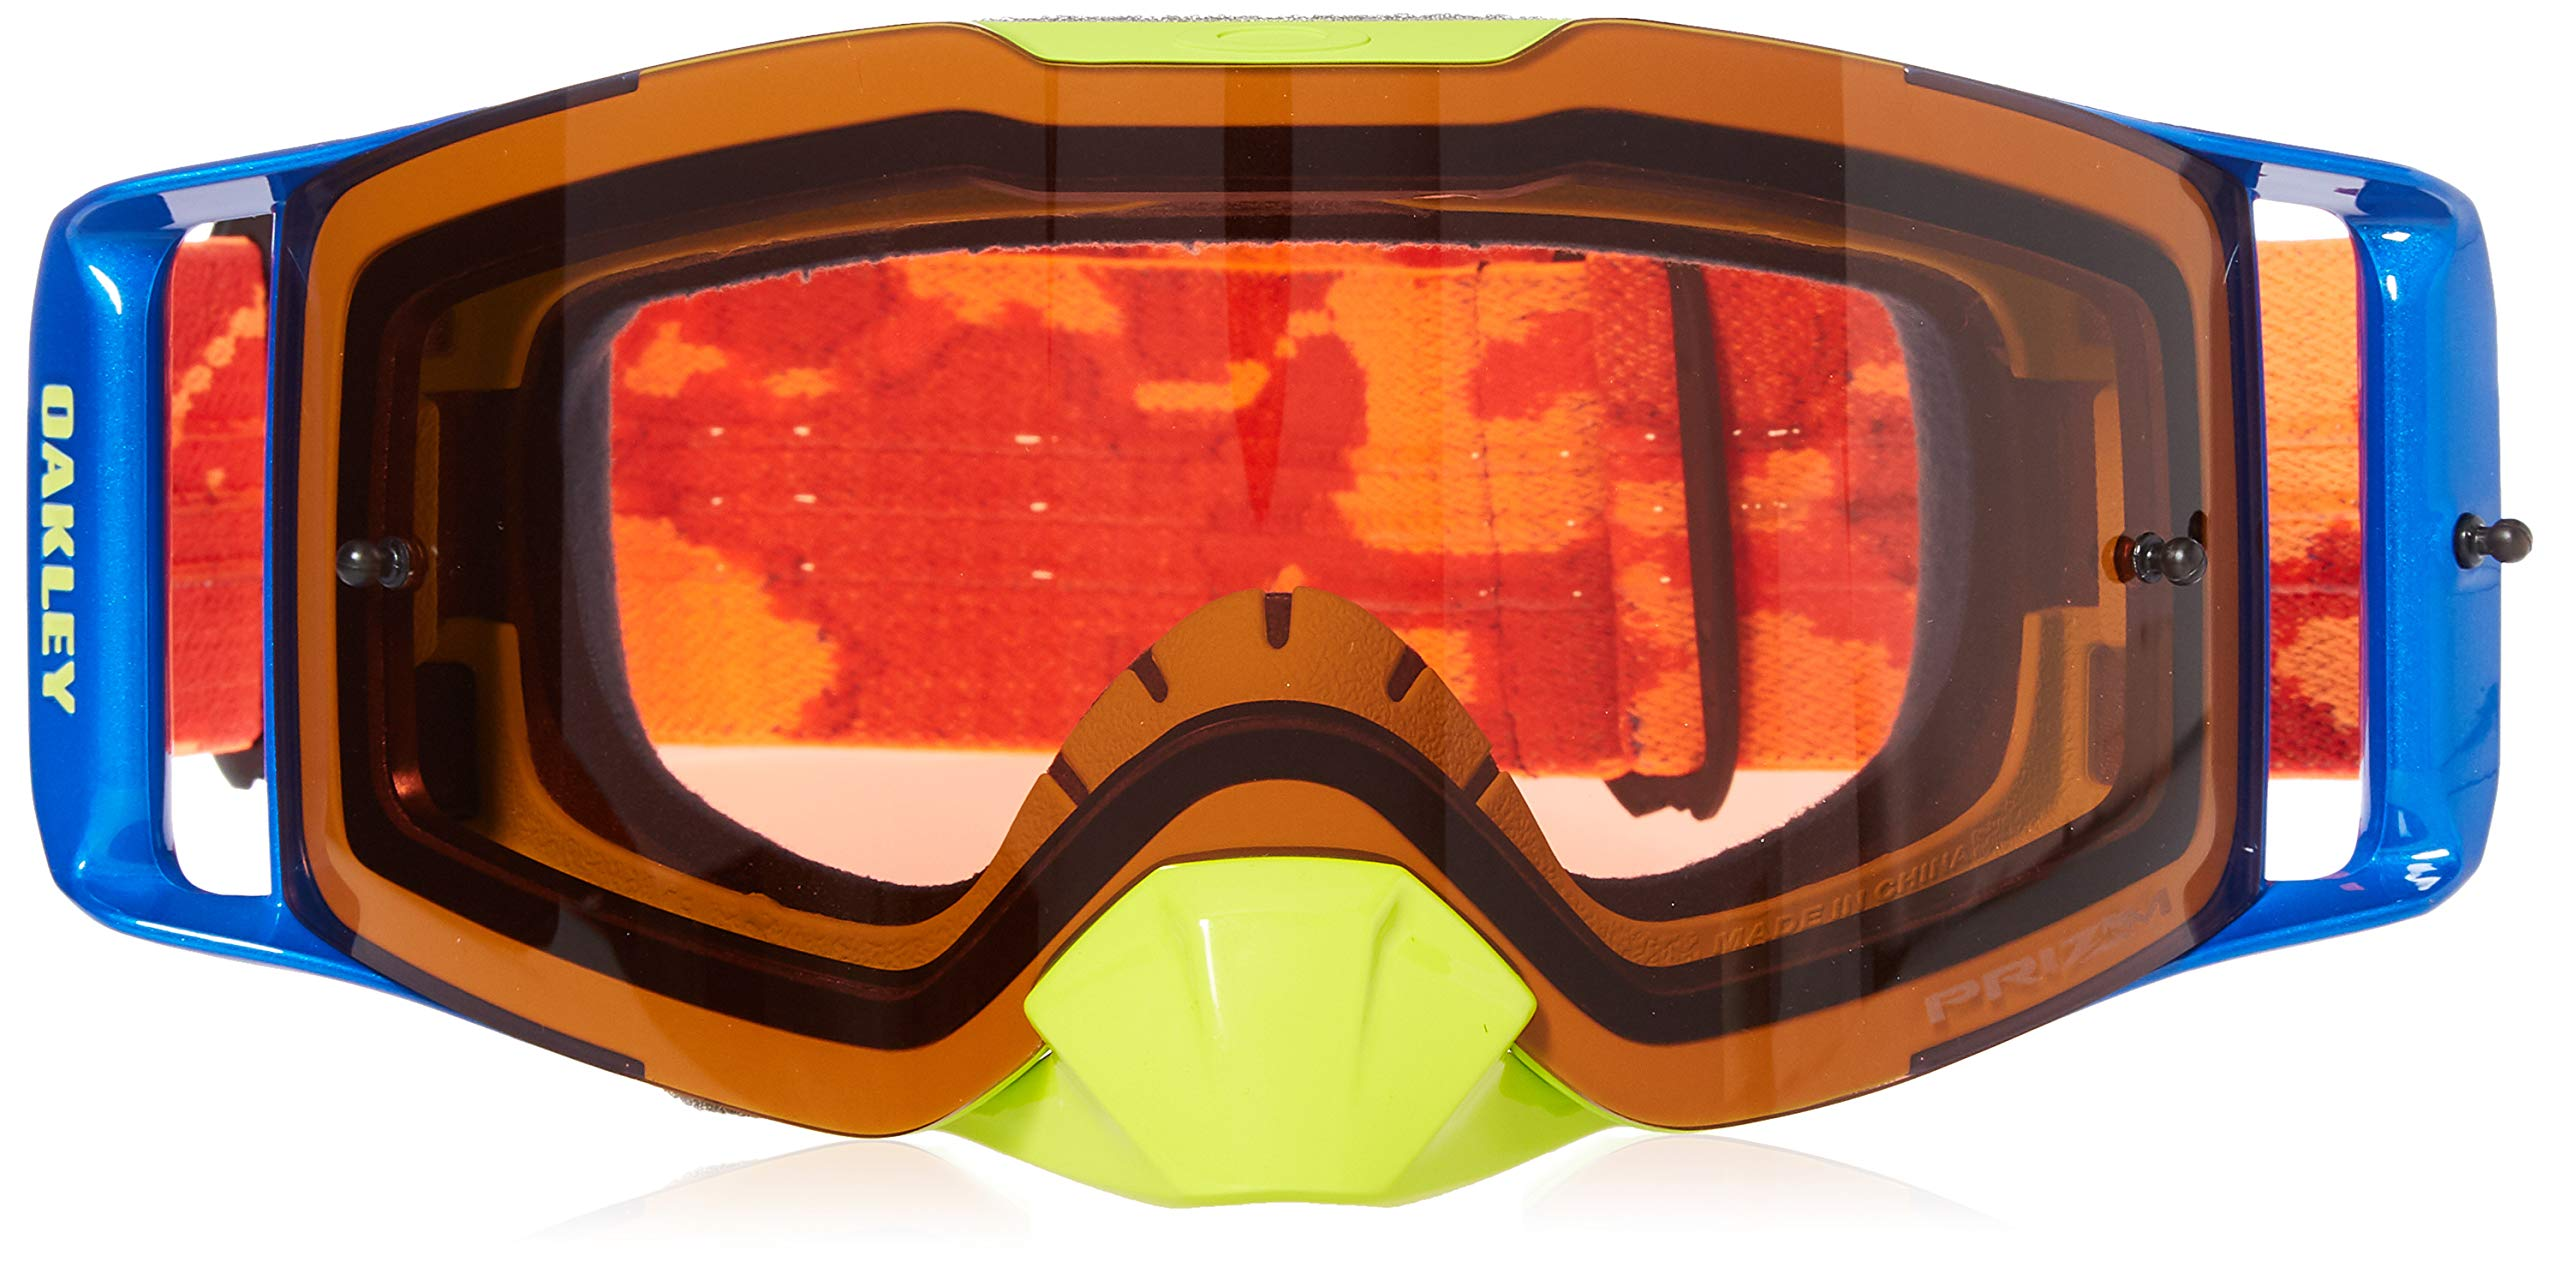 Oakley OO7087-14 FL MX Thermocamo Unisex-Adult Goggles, Large, Orange/Red by Oakley (Image #2)